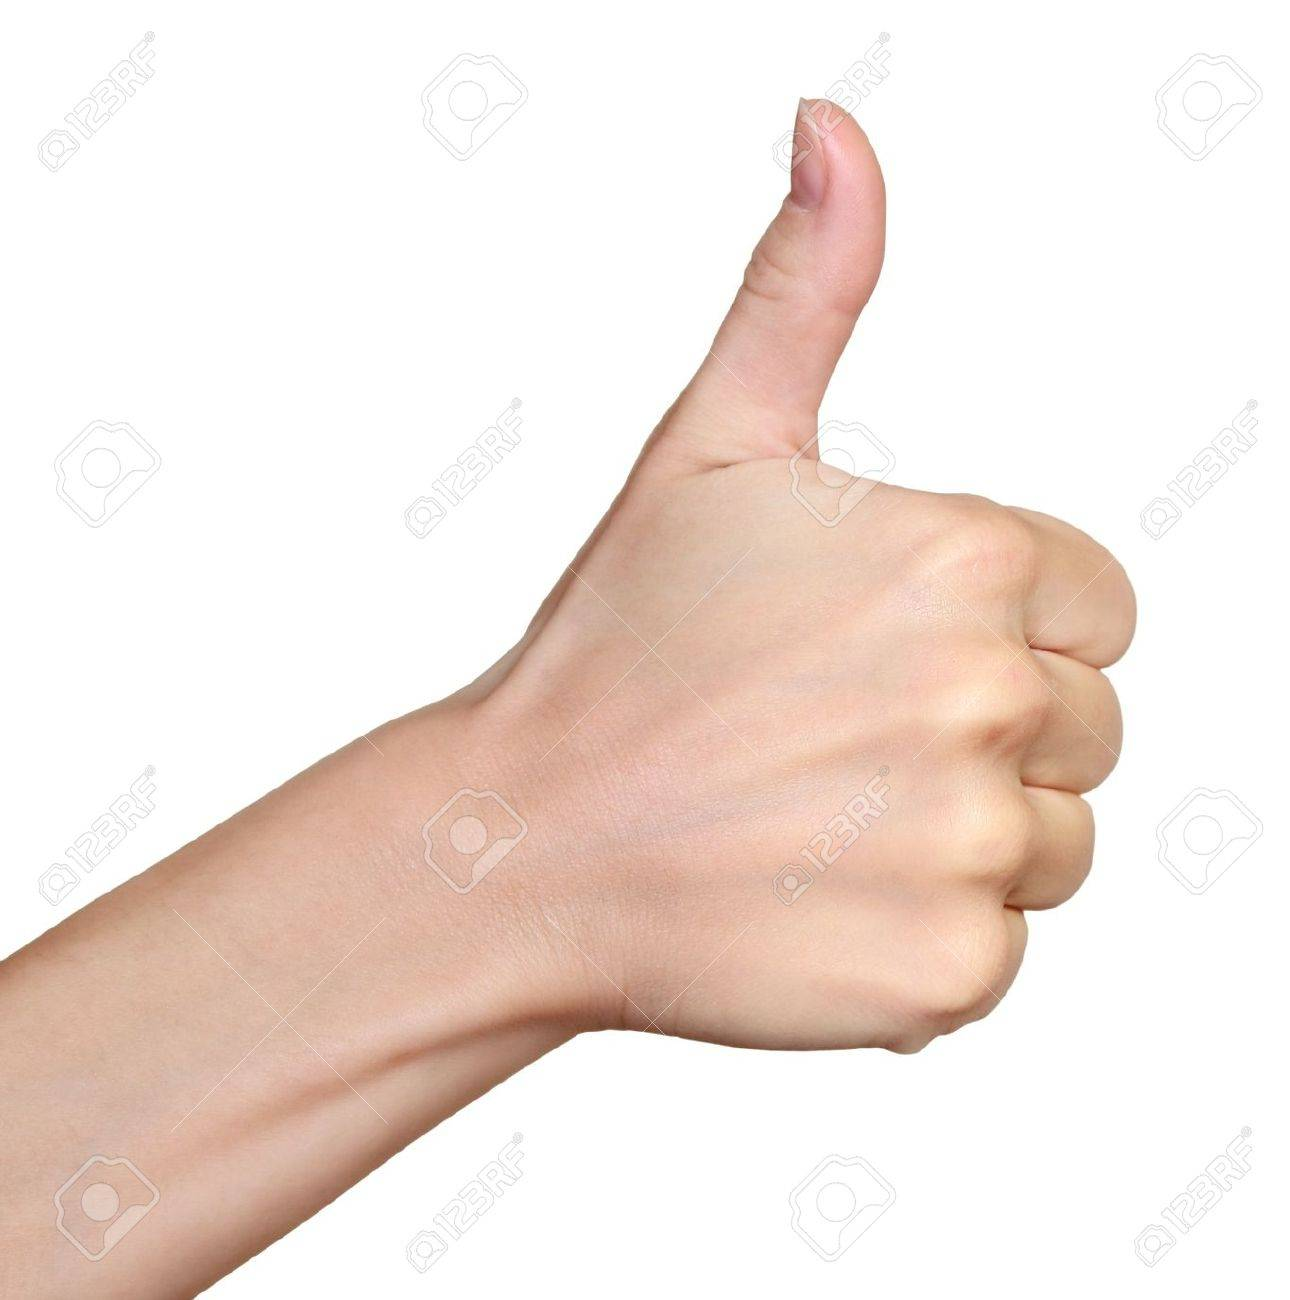 Hand with thumb up isolated on white background  Ok sign by woman Stock Photo - 16133369